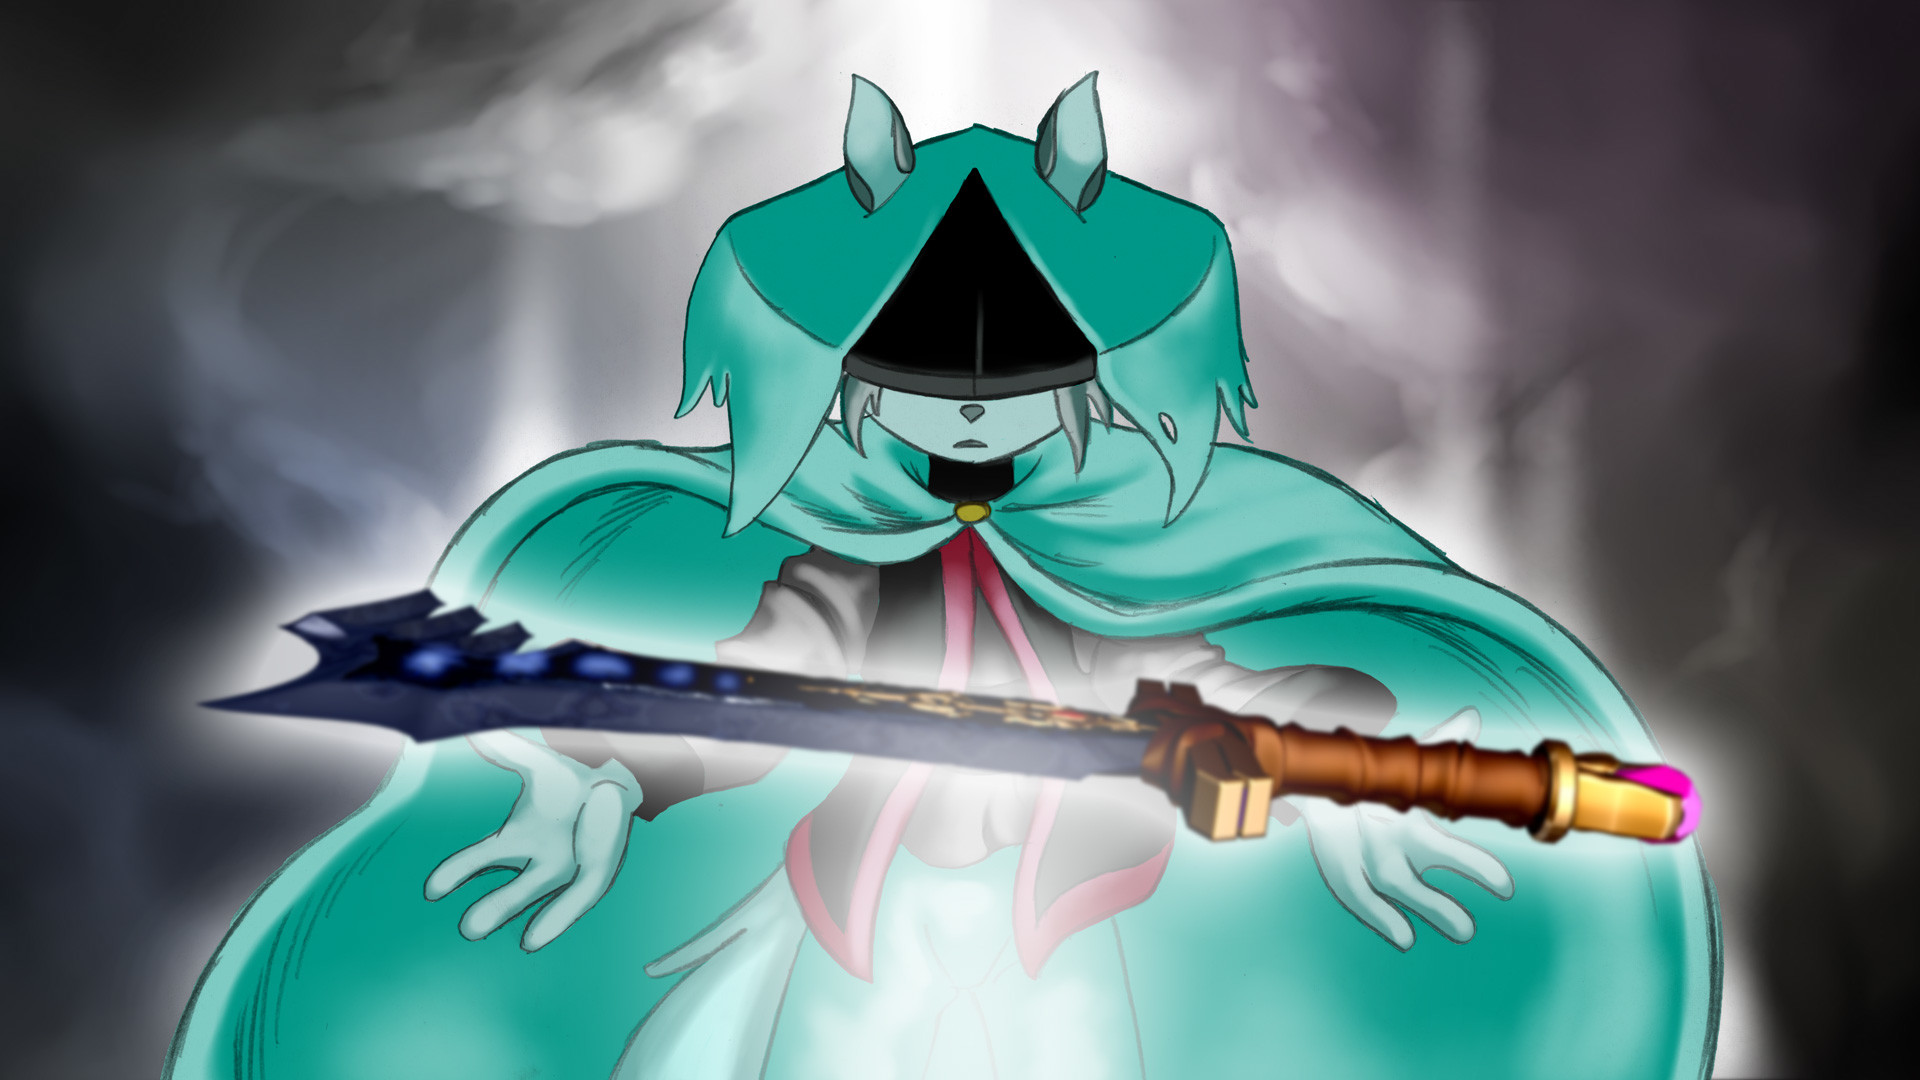 Dust: An Elysian Tail video game wallpapers • Wallpaper 6 of 8